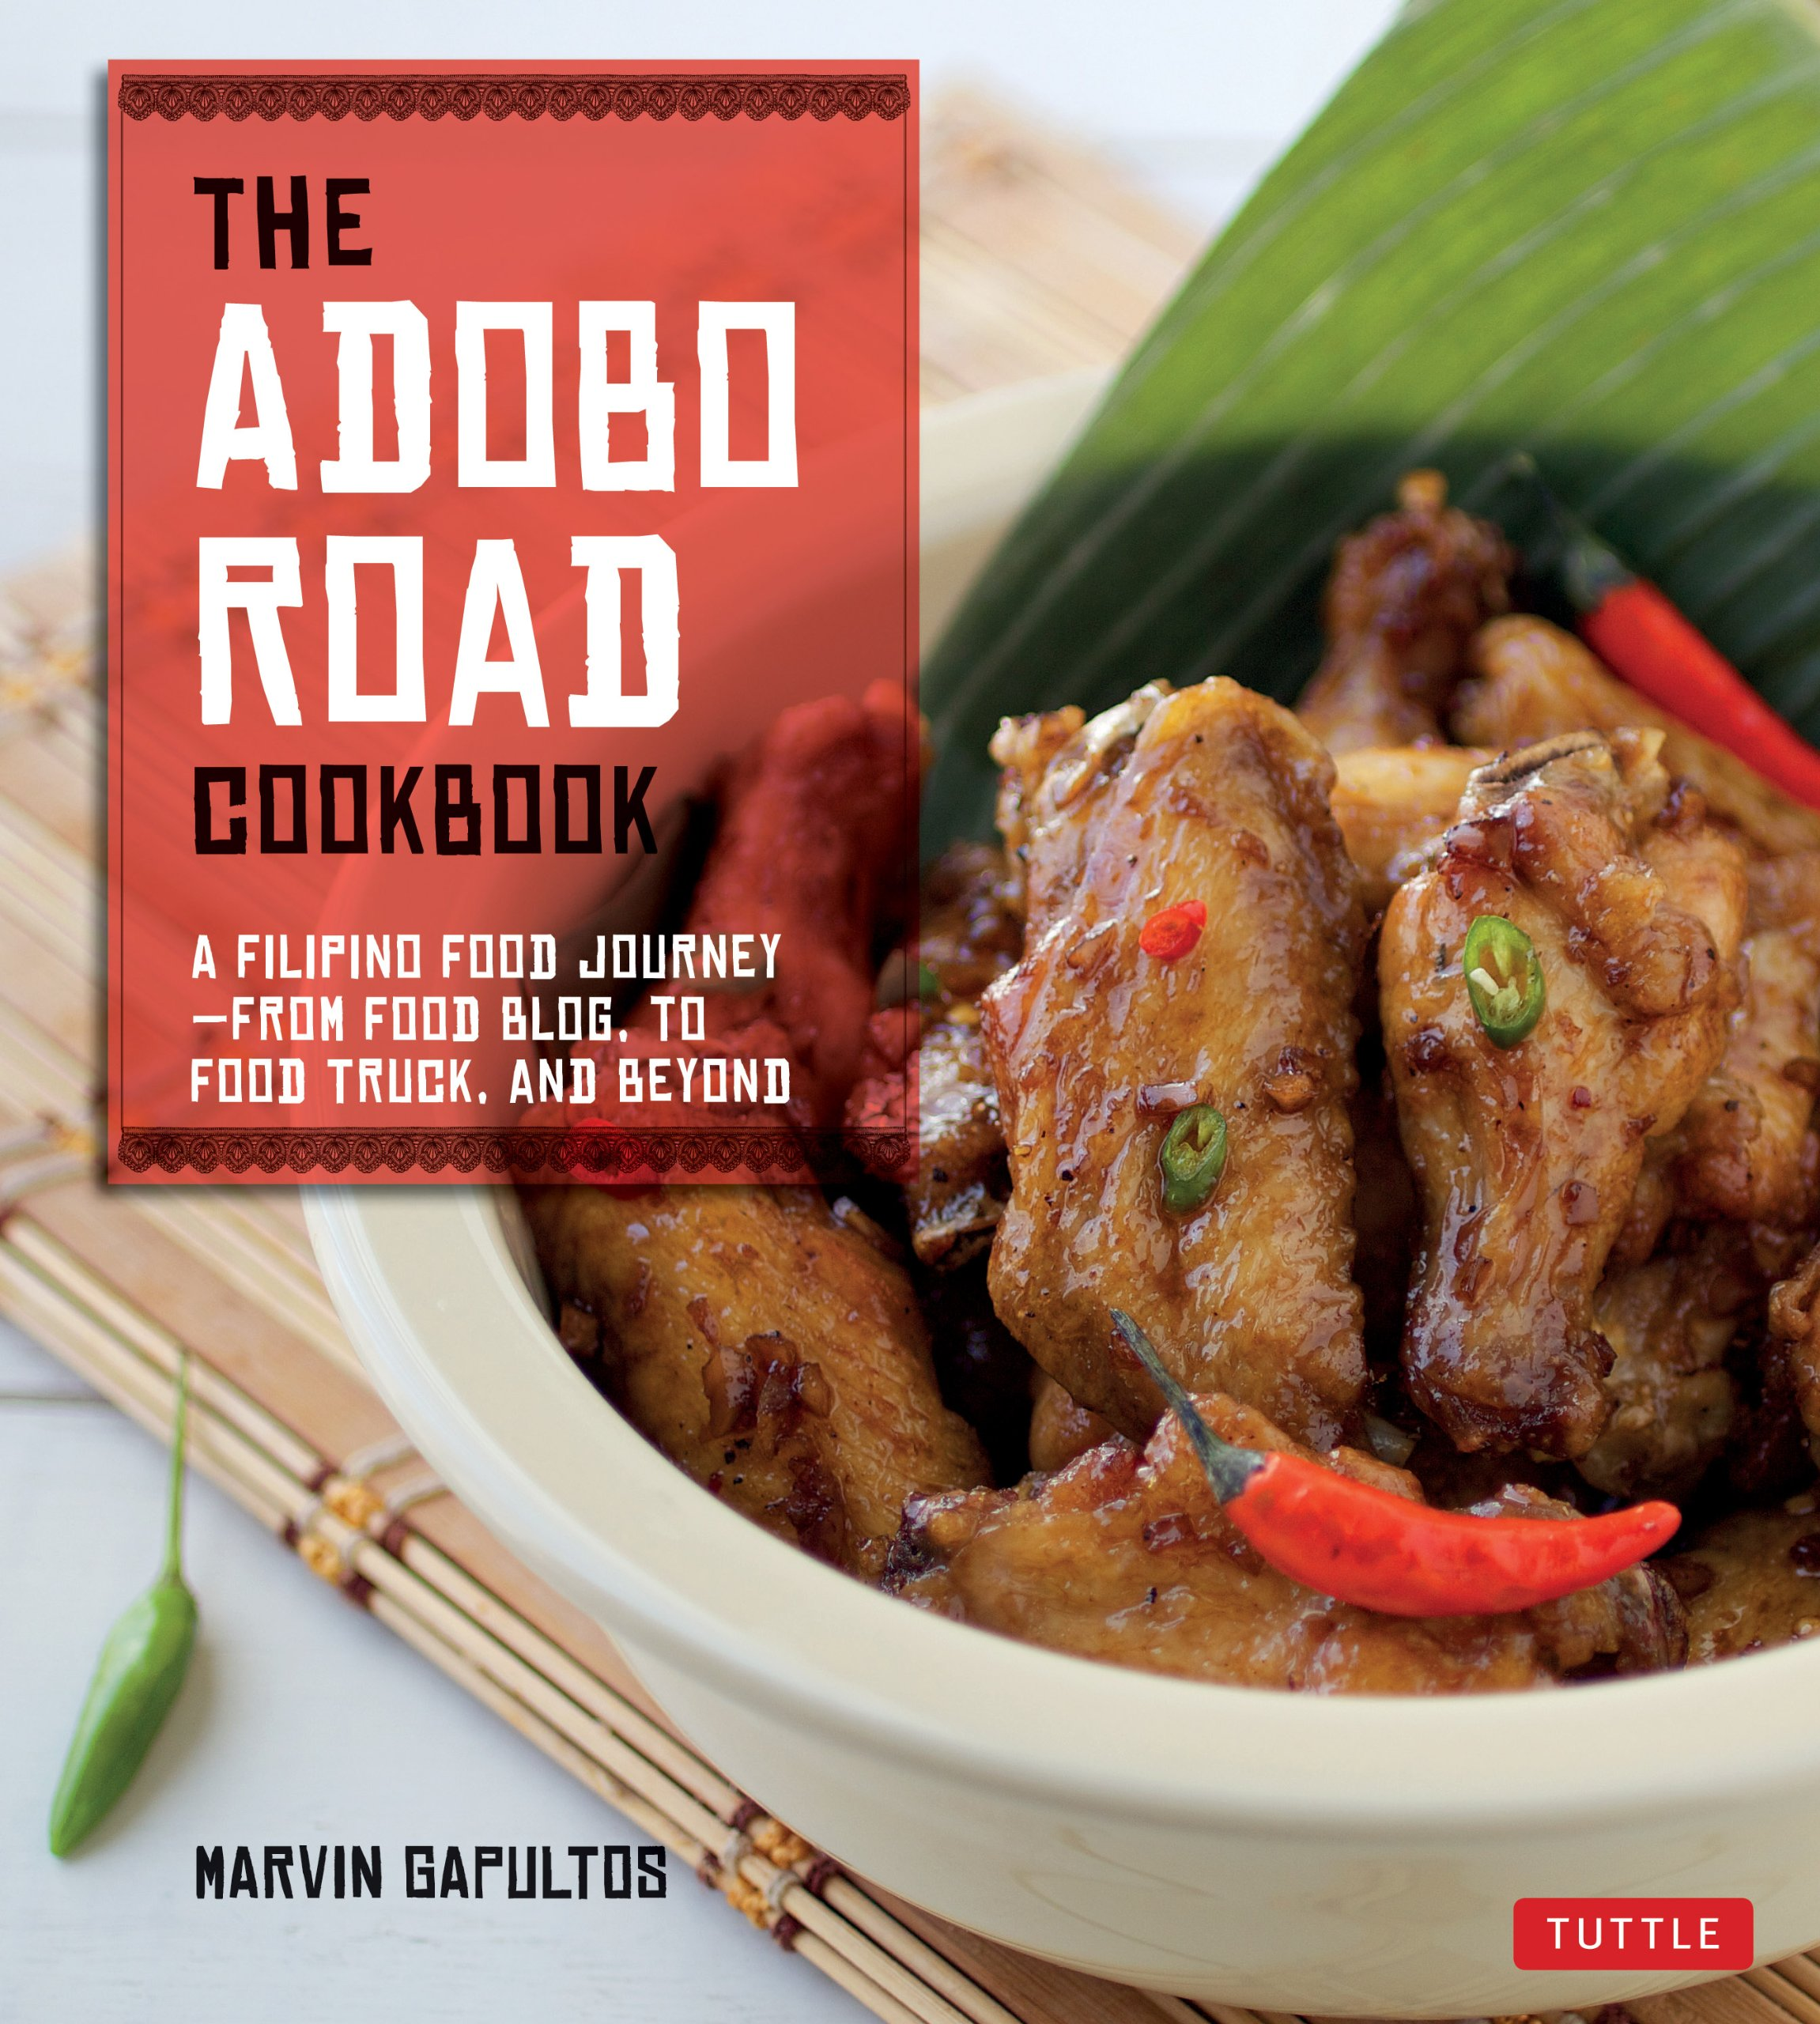 The adobo road cookbook a filipino food journey from food blog to the adobo road cookbook a filipino food journey from food blog to food truck and beyond filipino cookbook 99 recipes marvin gapultos 8601300501871 forumfinder Images